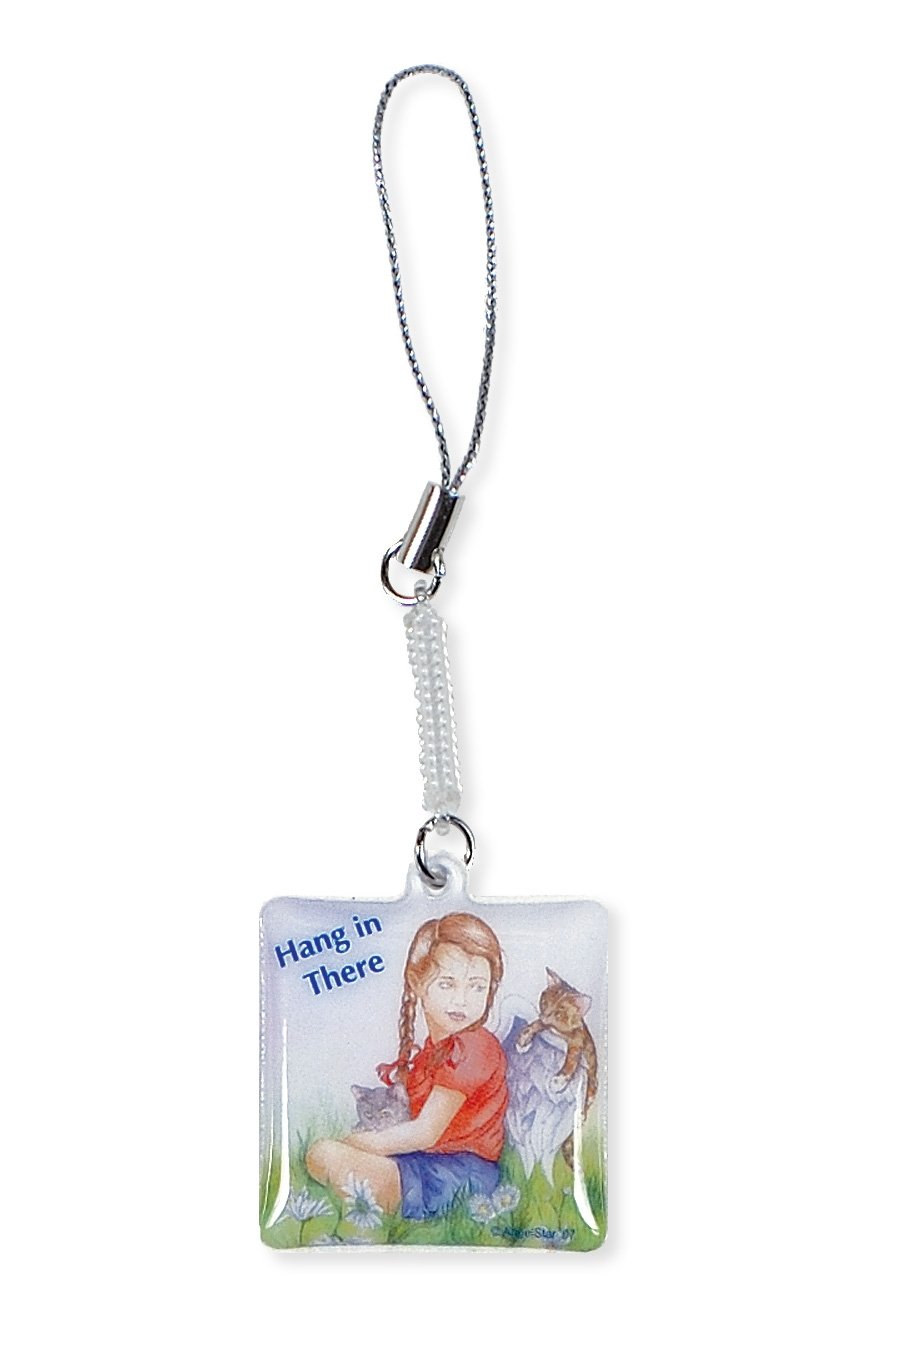 Angel Star Mobile Phone Cleaner Charm Hang in There